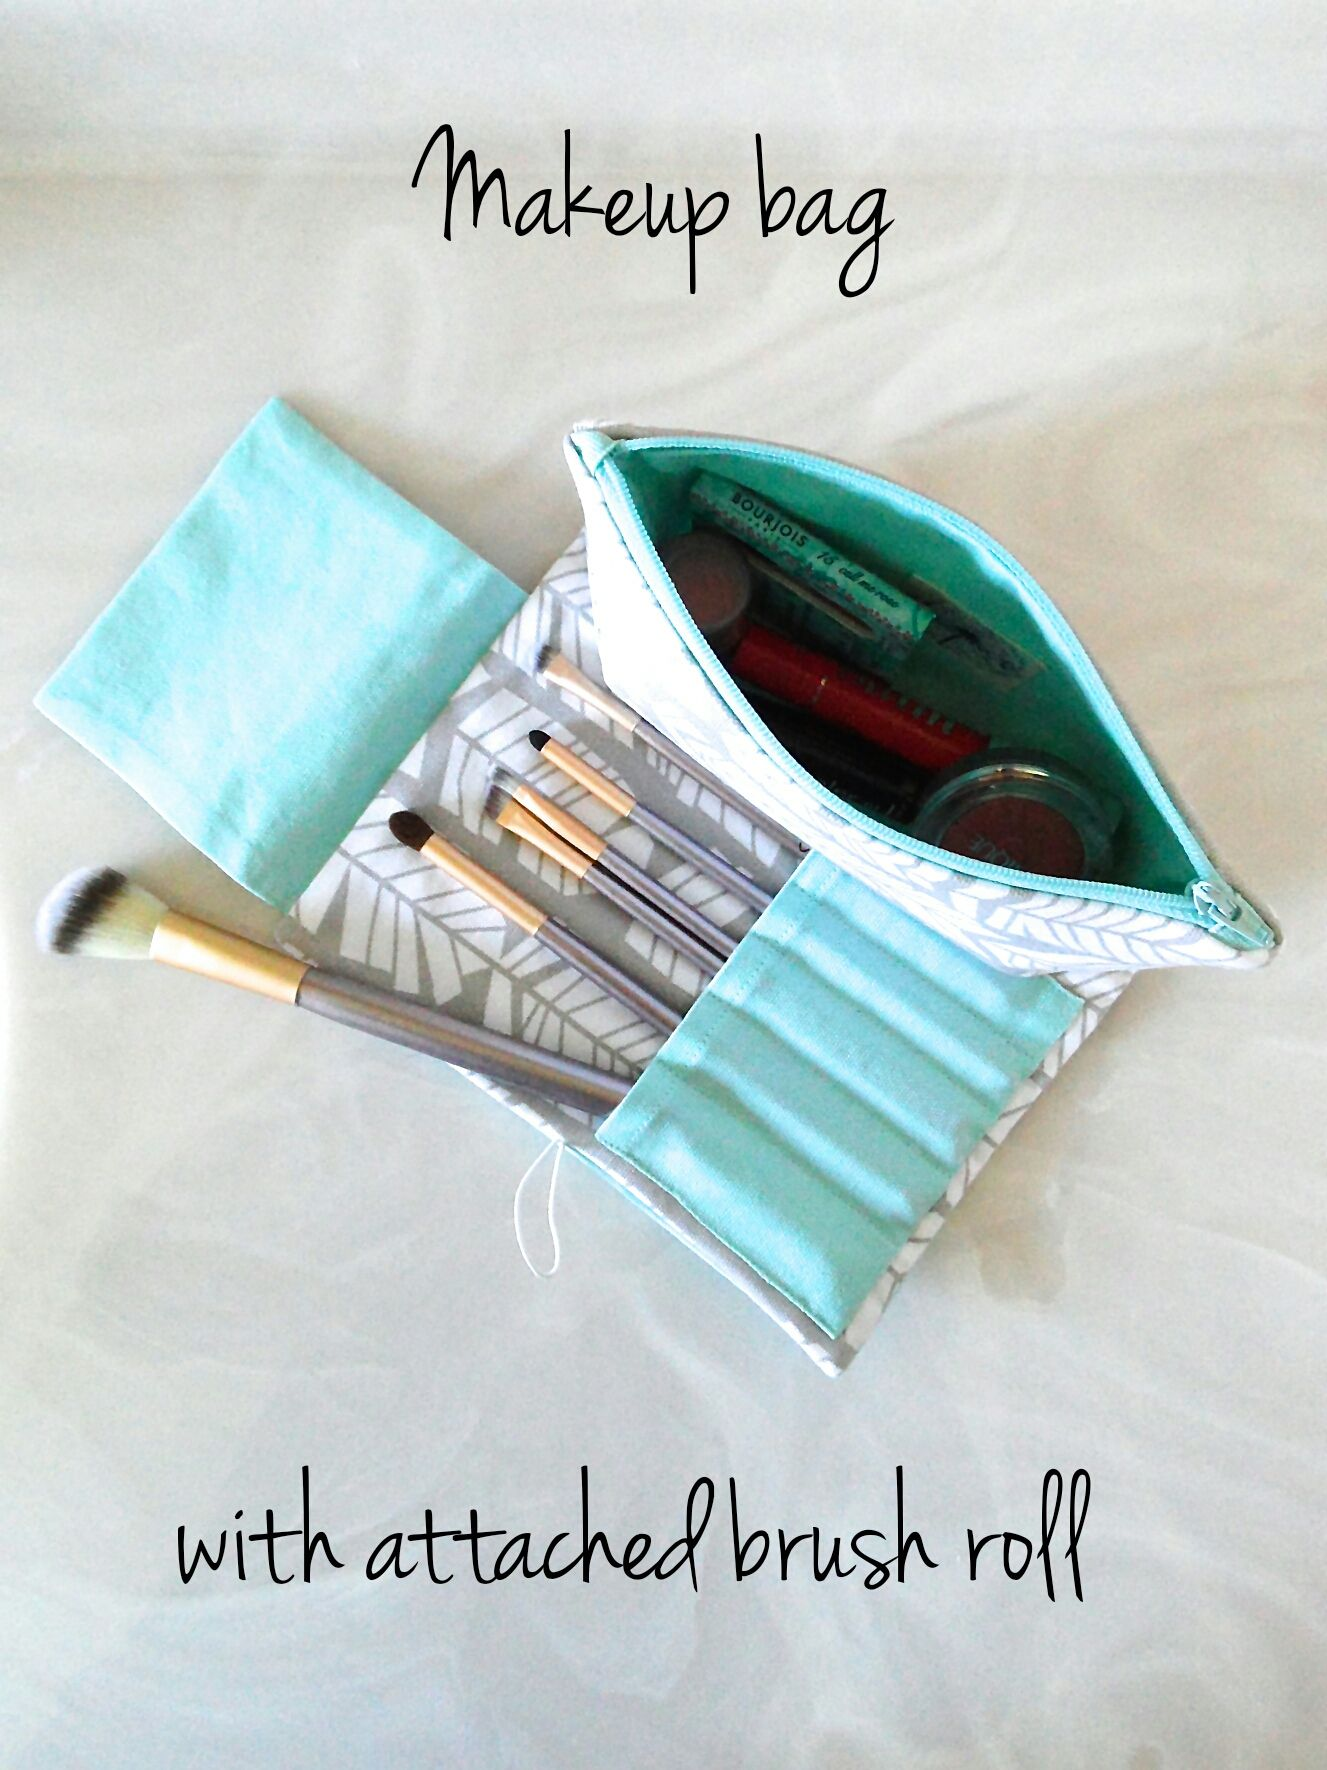 FREE MakeUp Brush Roll Up TUTORIAL! Diy makeup bag, Diy